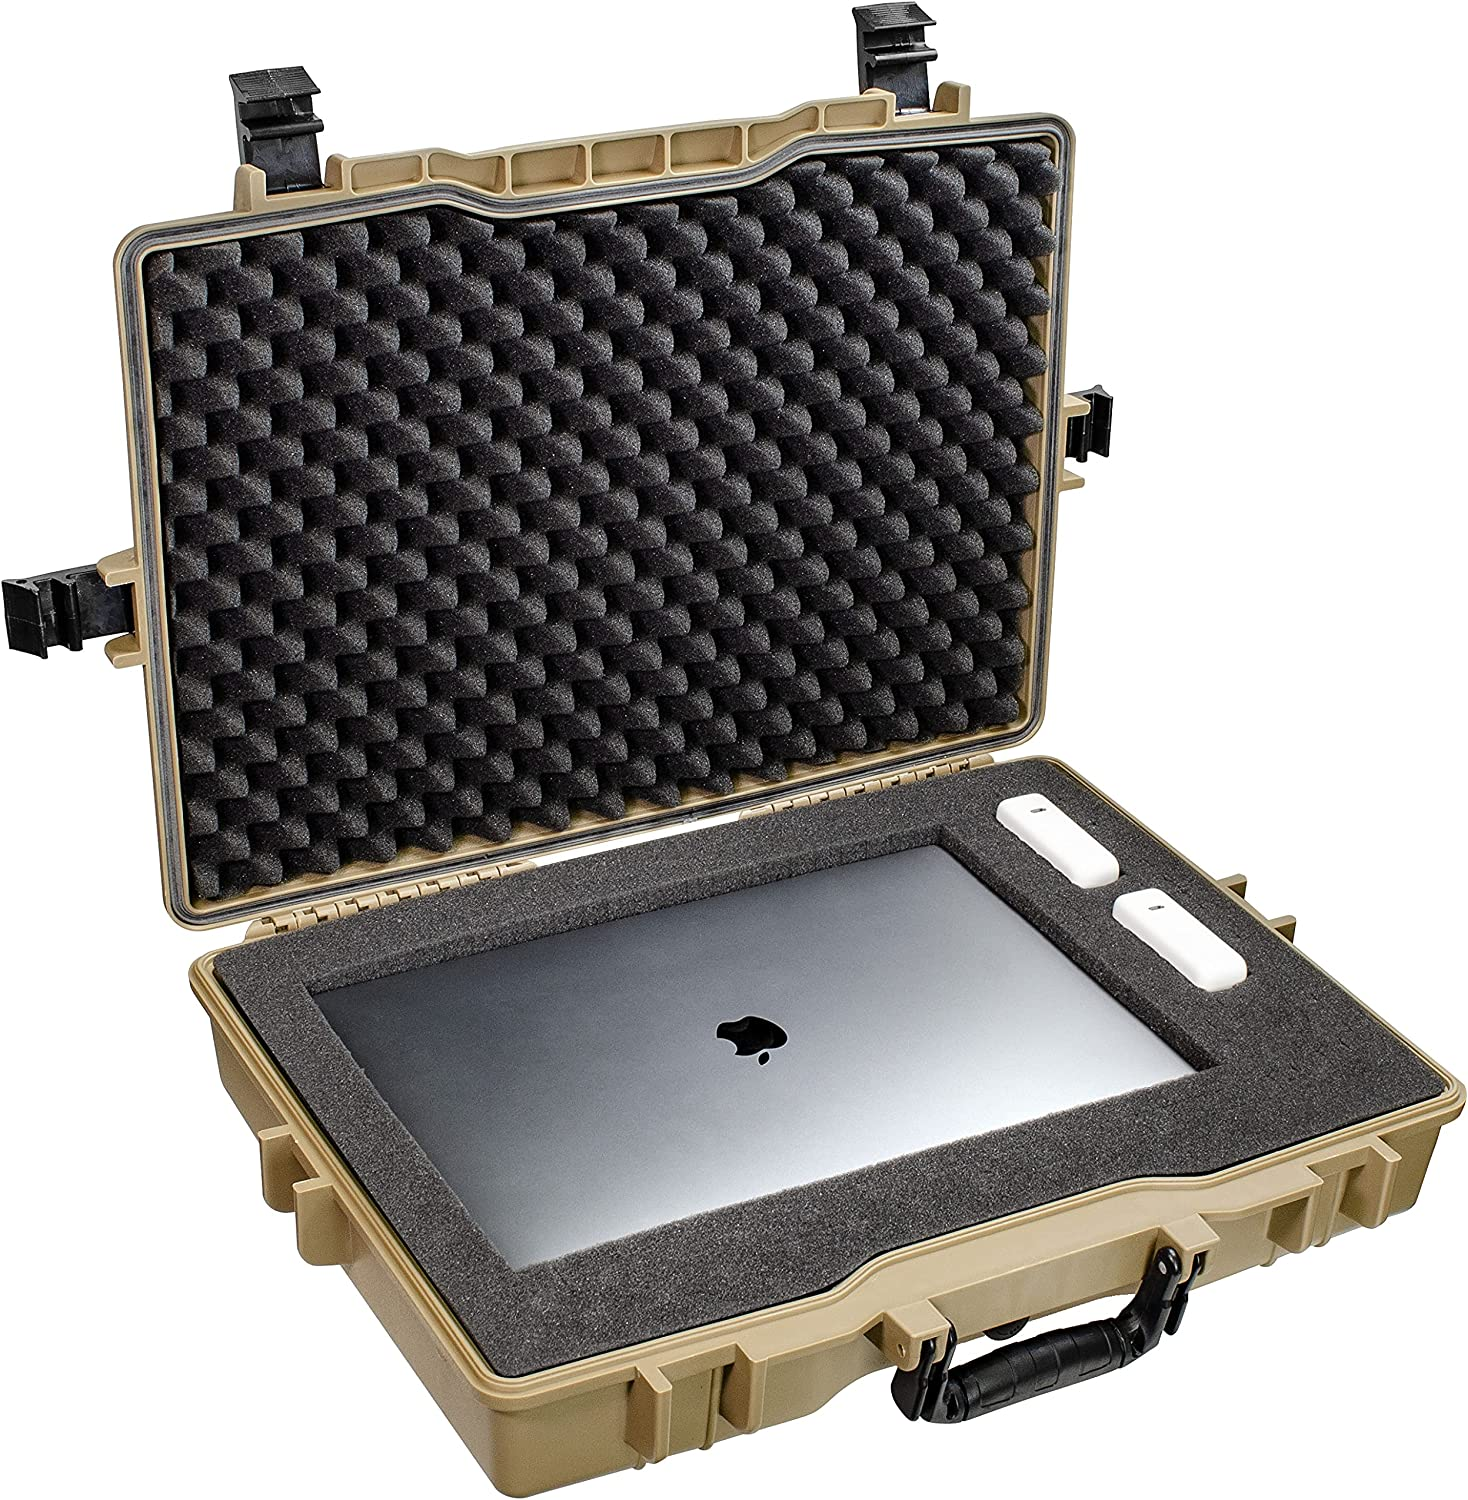 Large 22 inch Protective, Camera, Tools, Equipment Laptop Hard Case Waterproof w/ 3 Layers Foam (Tan FDE)